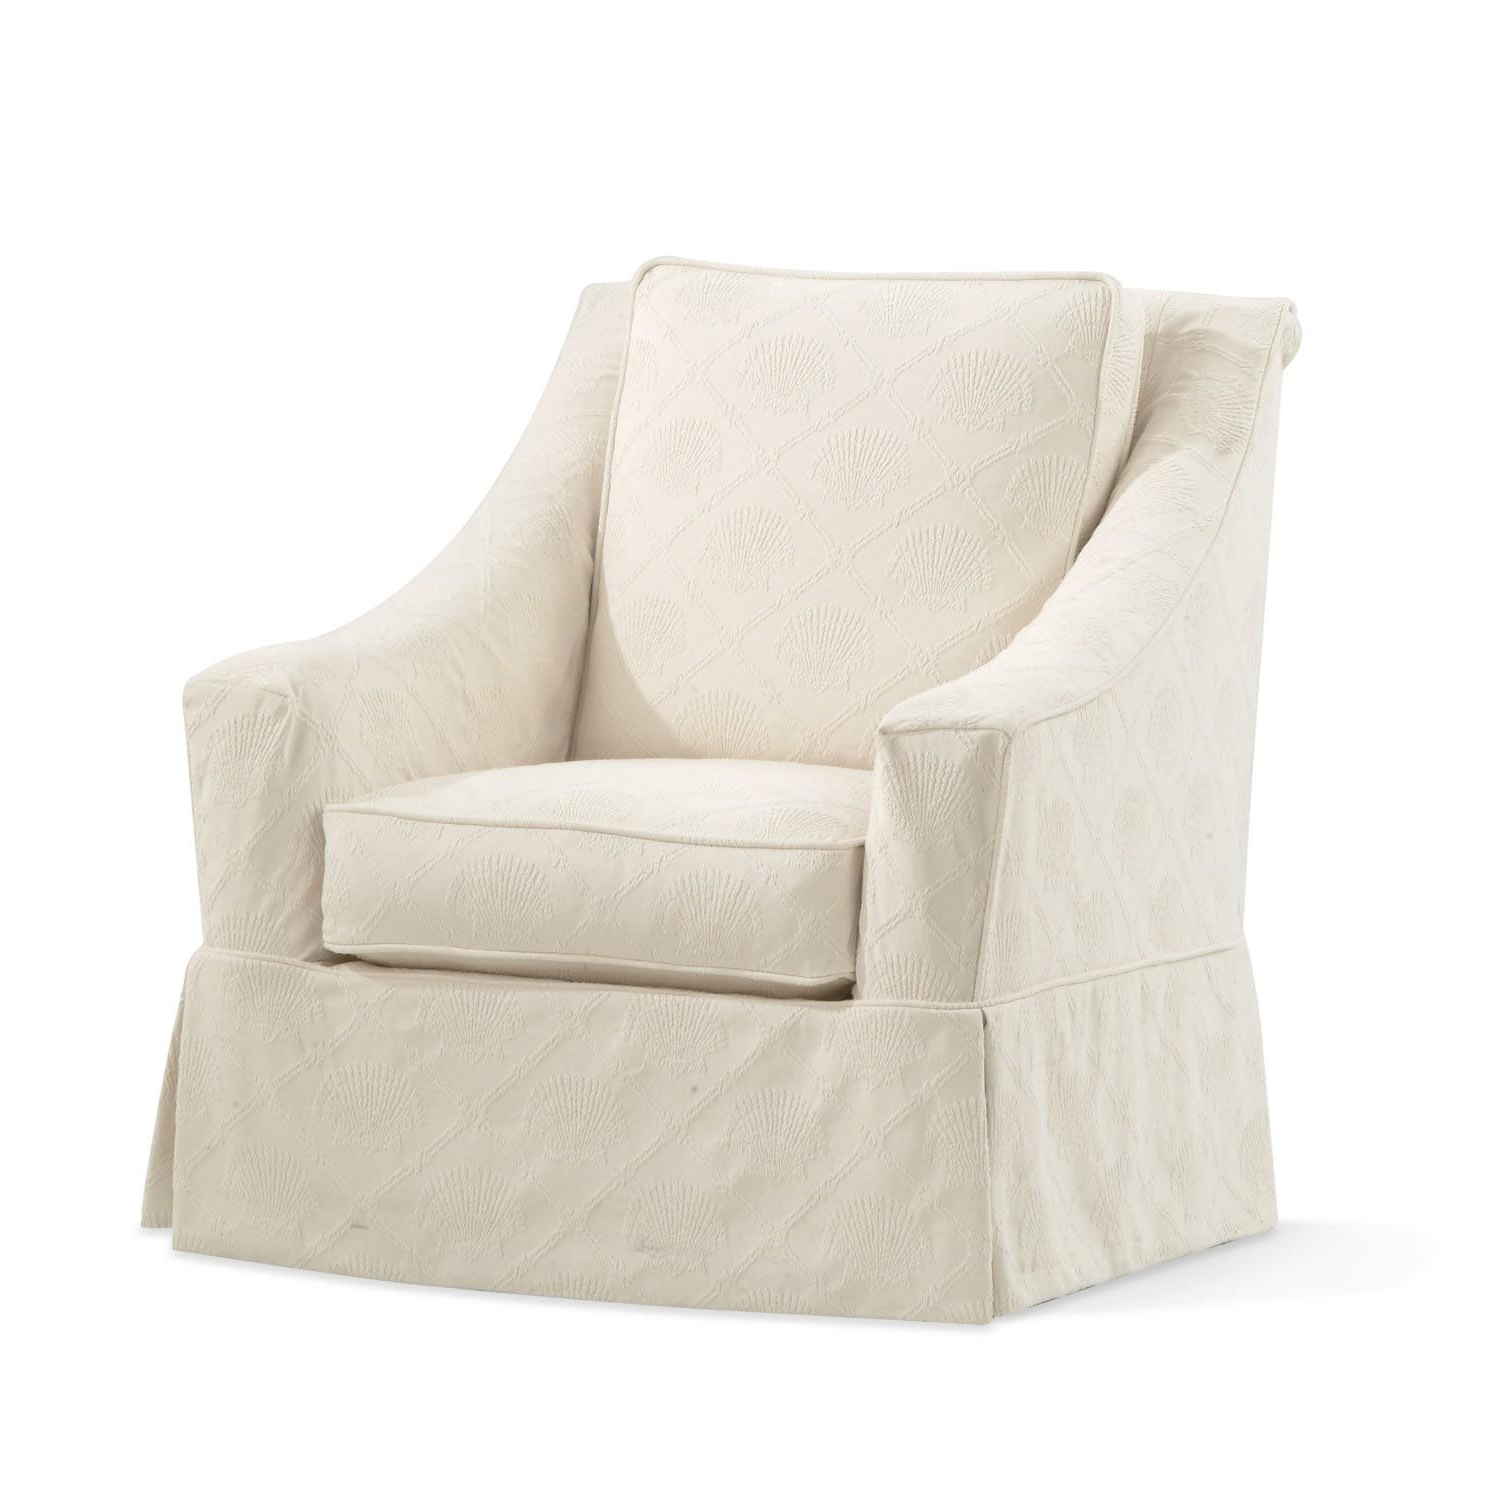 American Country Throughout Famous Loft Smokey Swivel Accent Chairs (View 20 of 20)